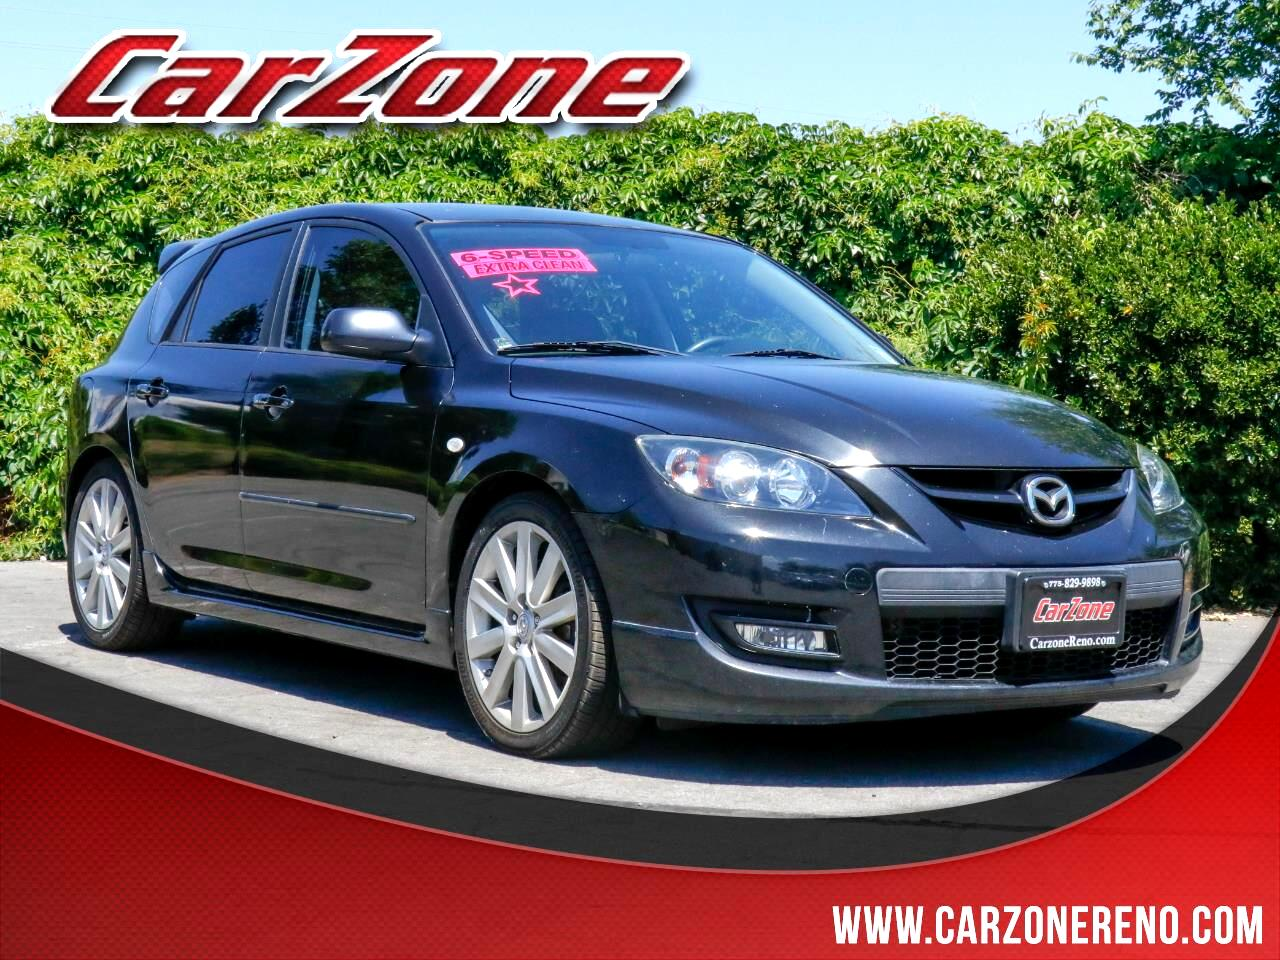 2008 Mazda MAZDASPEED3 5dr HB Mazdaspeed3 Sport*Ltd Avail*